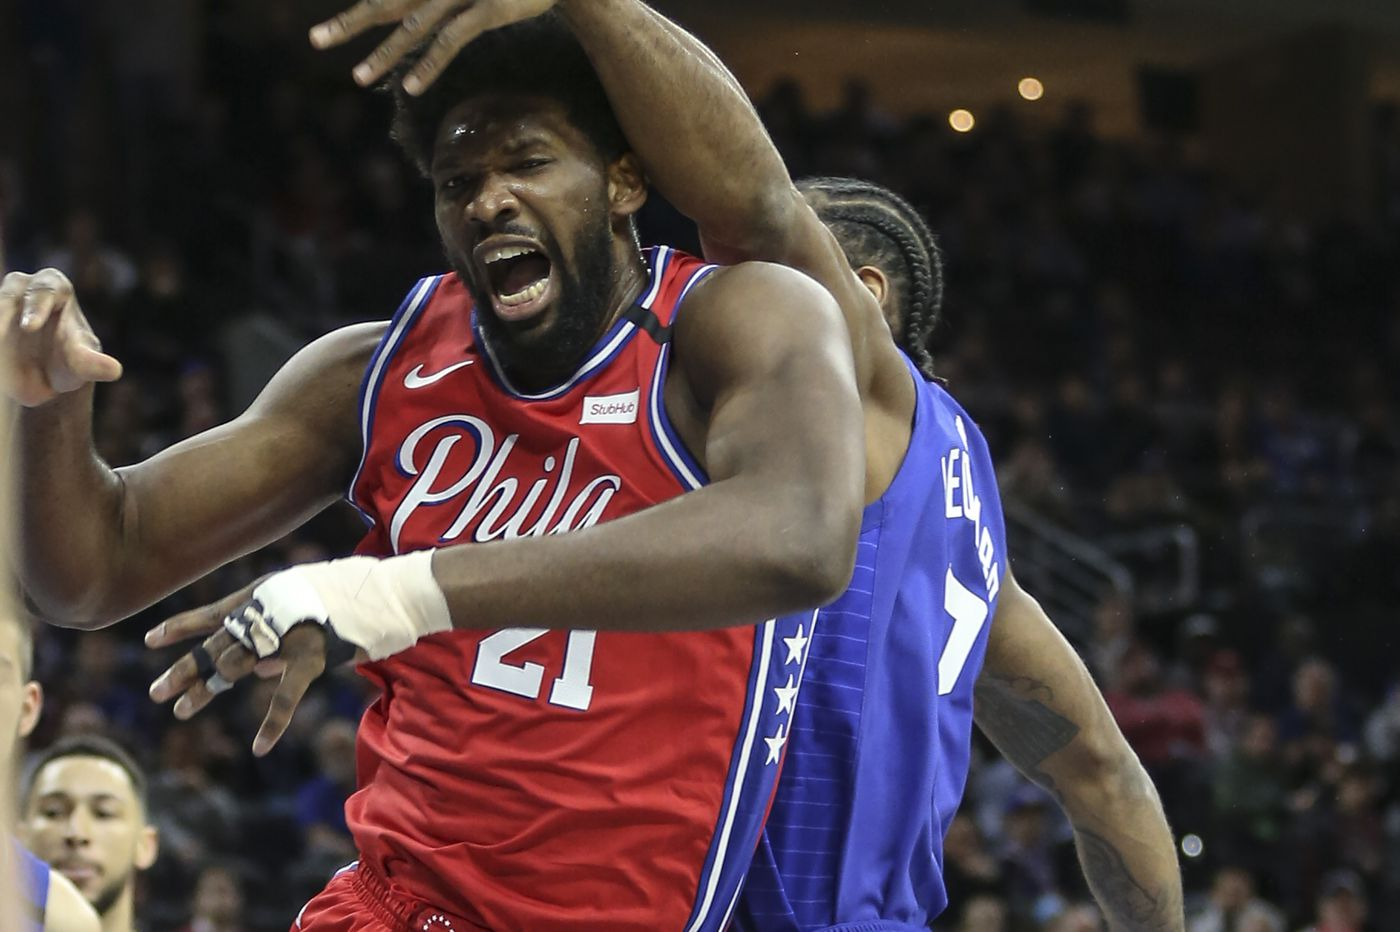 Joel Embiid, Raul Neto and Glenn Robinson III participate in Sixers practice Monday